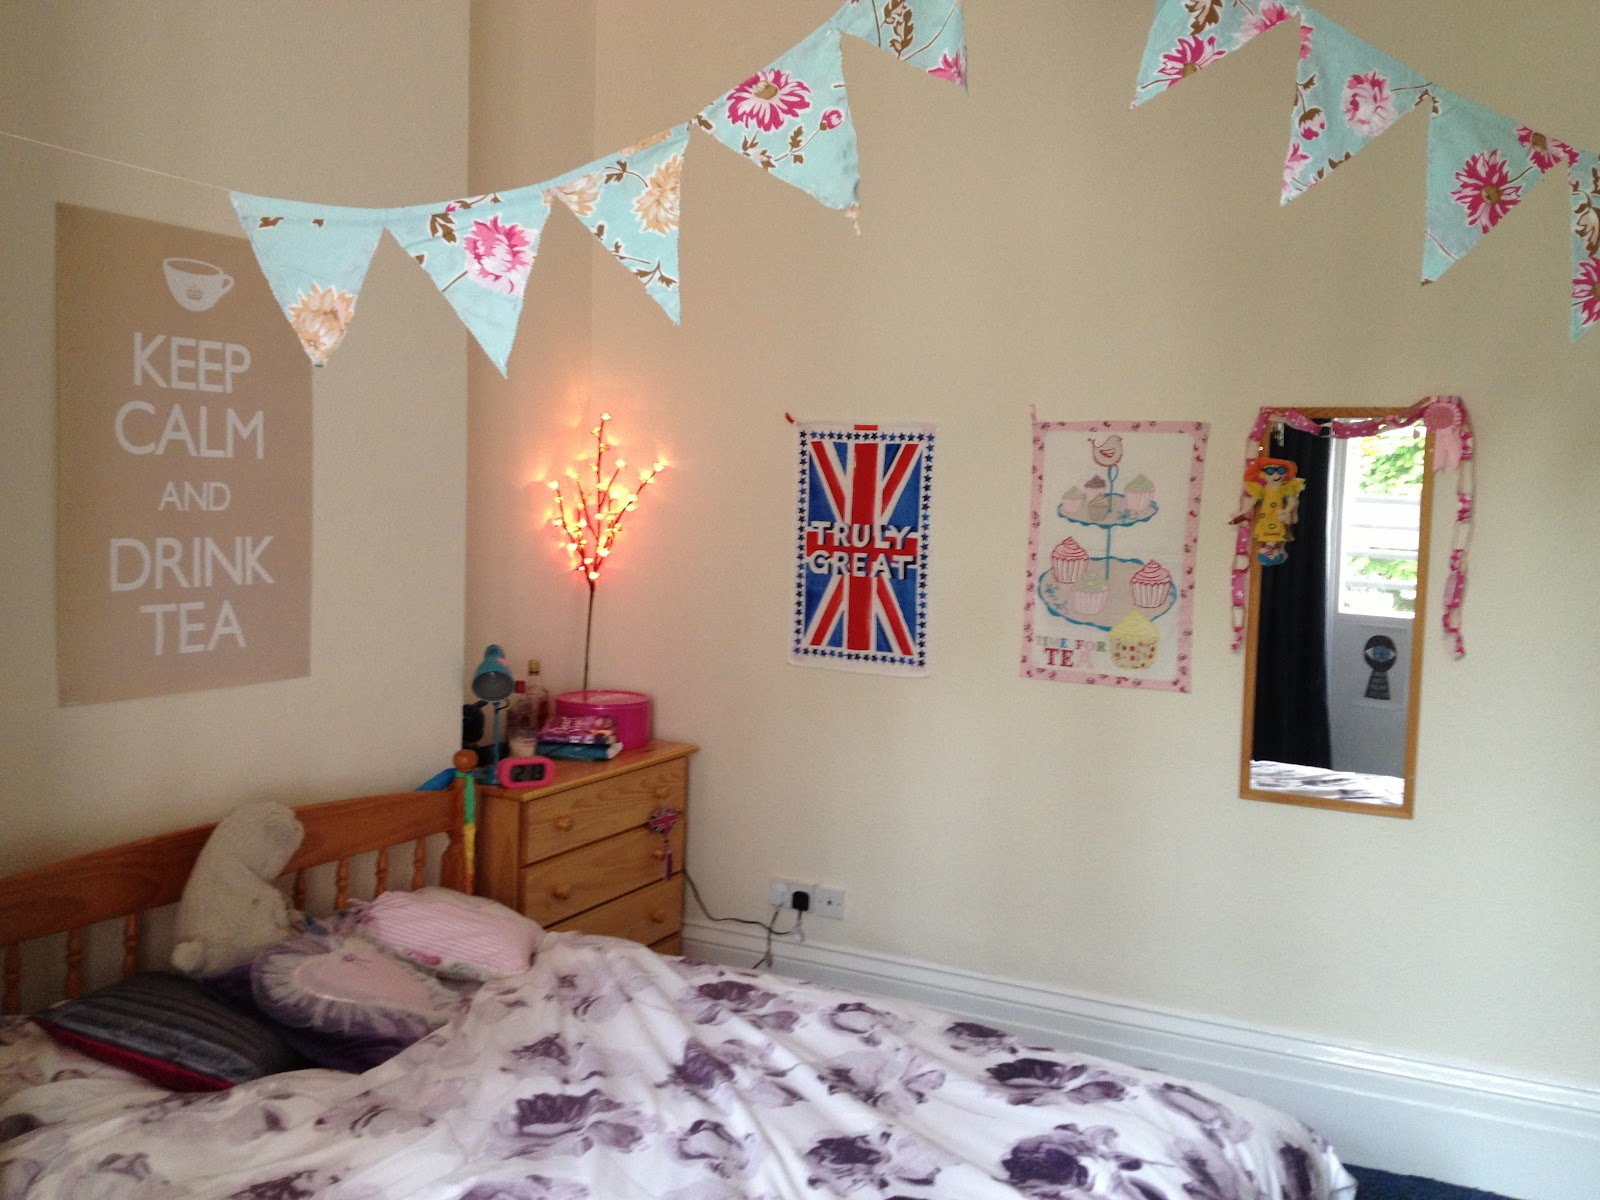 The Twenty Best Ways To Decorate Your Student Room At Uni.